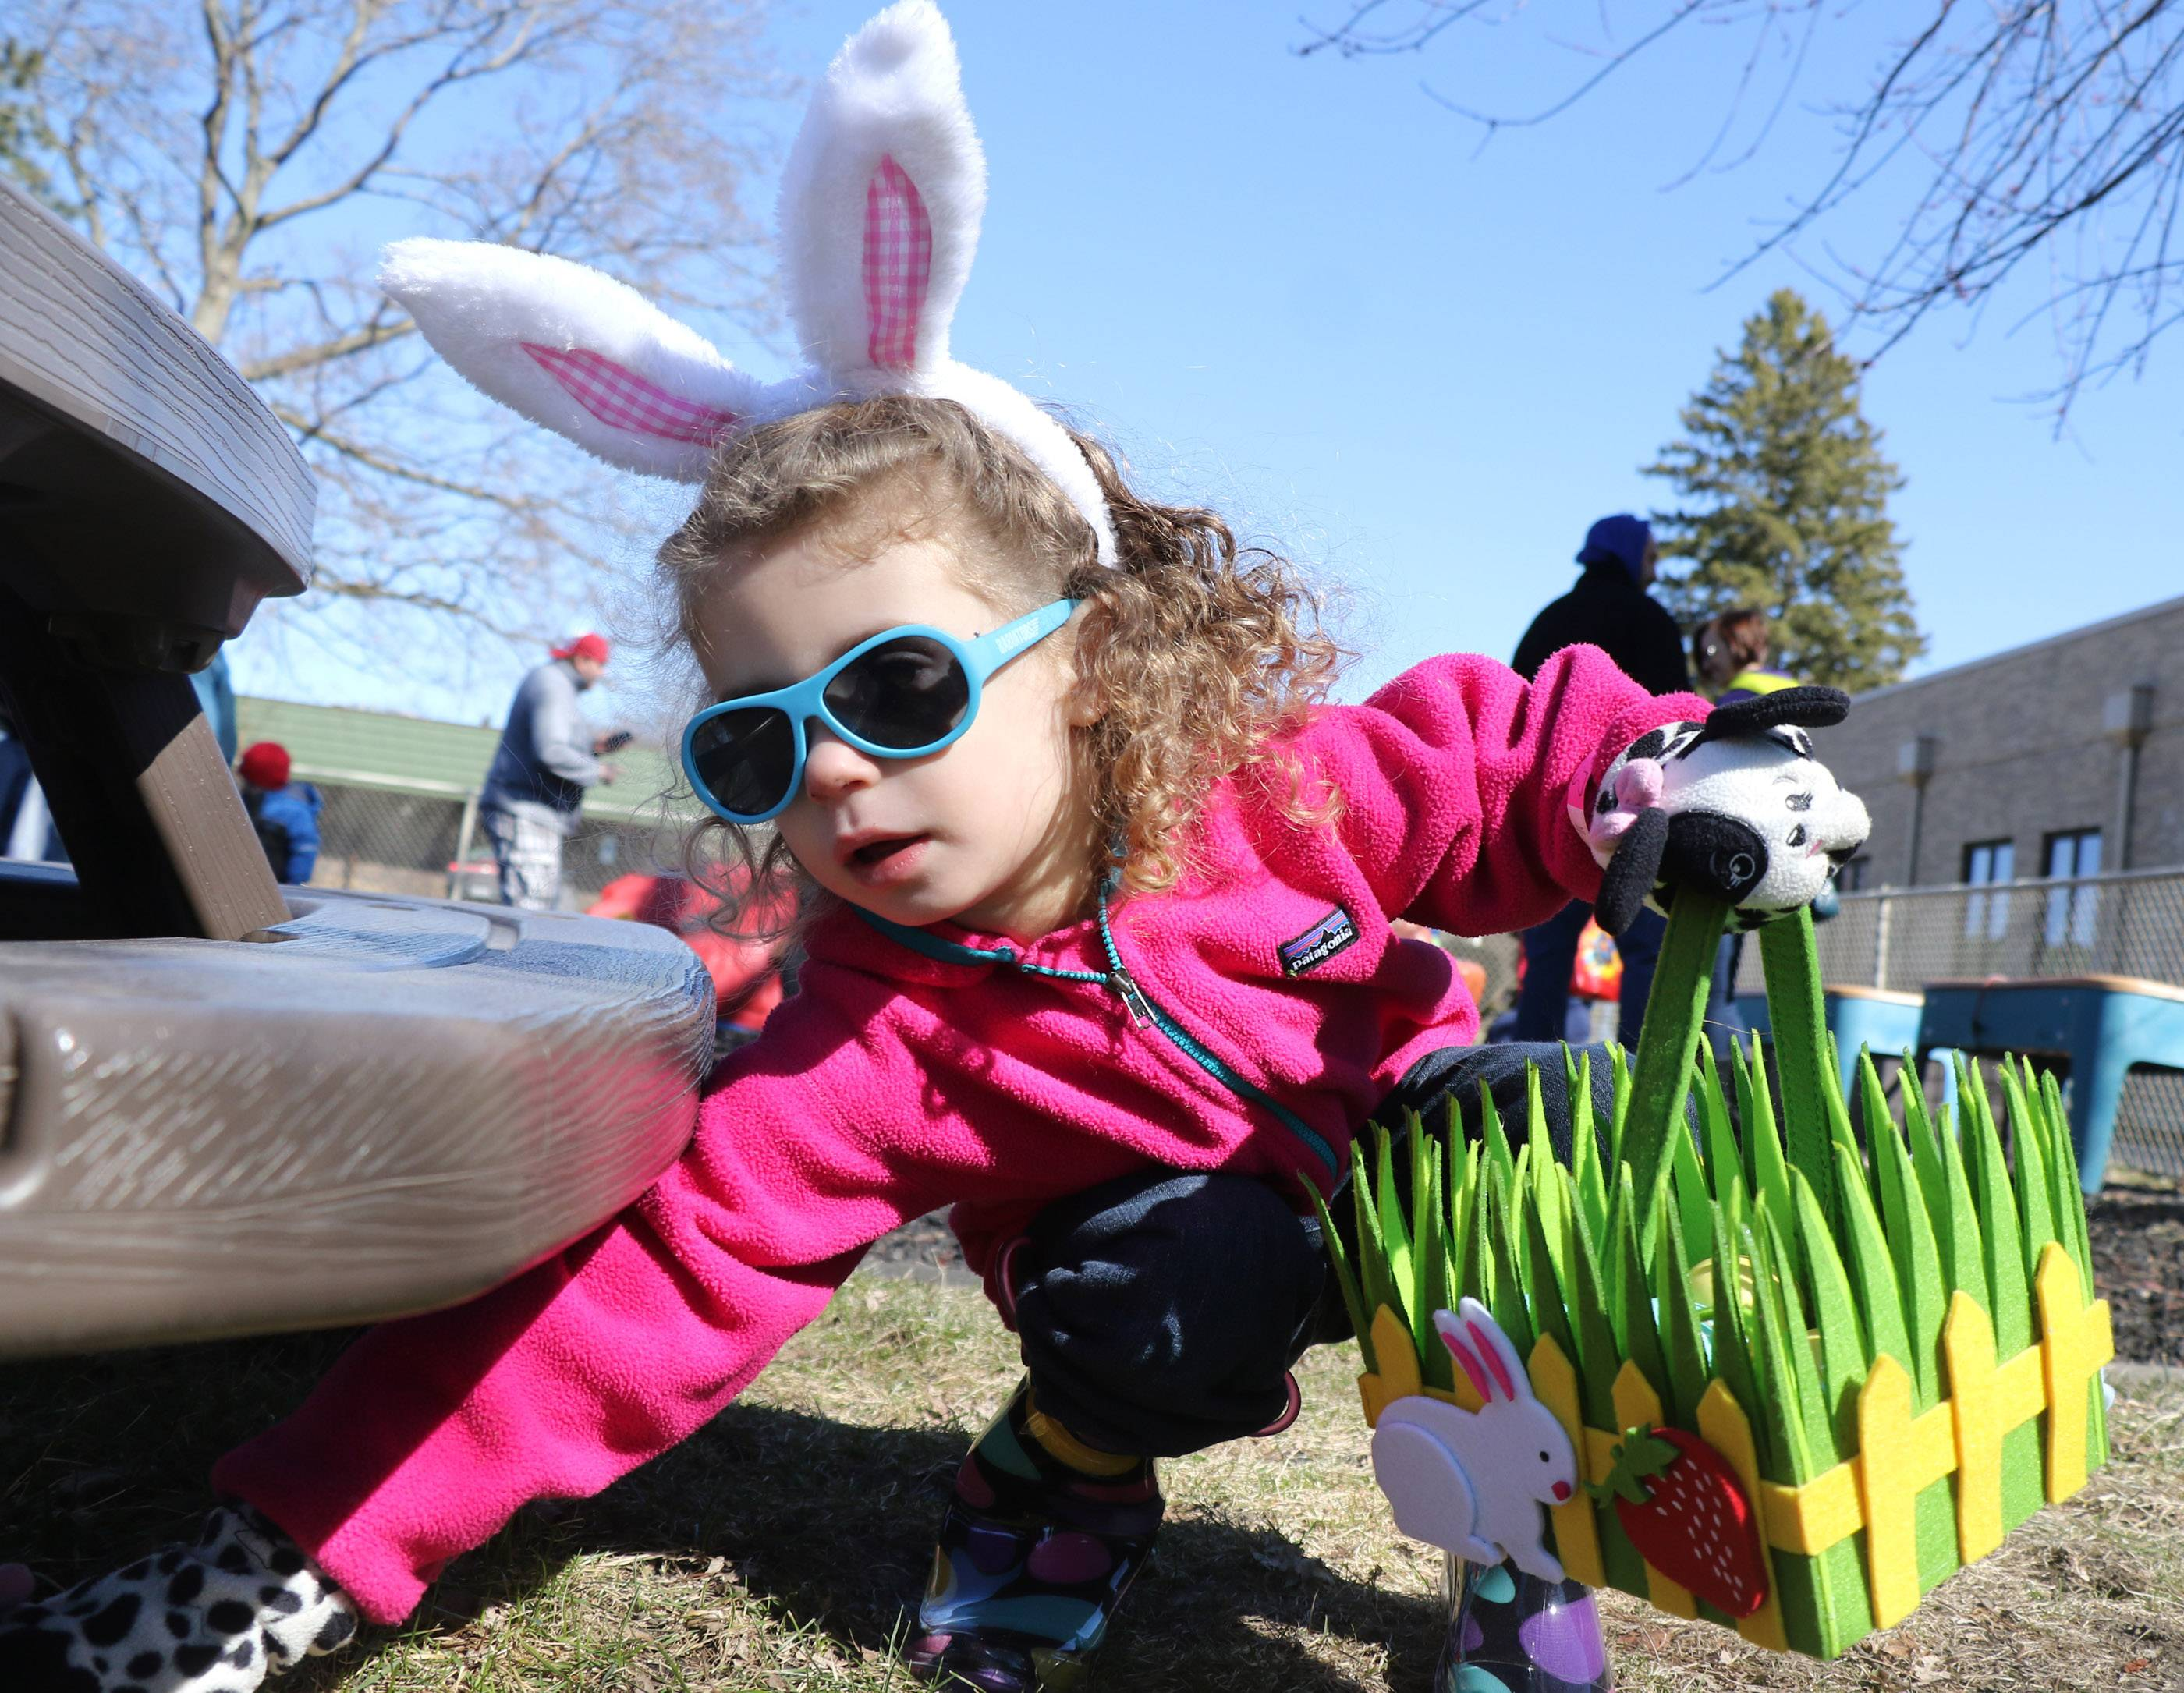 Hailey Giarraffa, 3, of Buffalo Grove, reaches for plastic eggs hidden under a bench at Nutphree's Bakery's first food free Easter egg hunt for children with food allergies at Trinity United Methodist Church on Saturday in Mount Prospect. Giarraffa is allergic to dairy, eggs, peanuts and other food items.